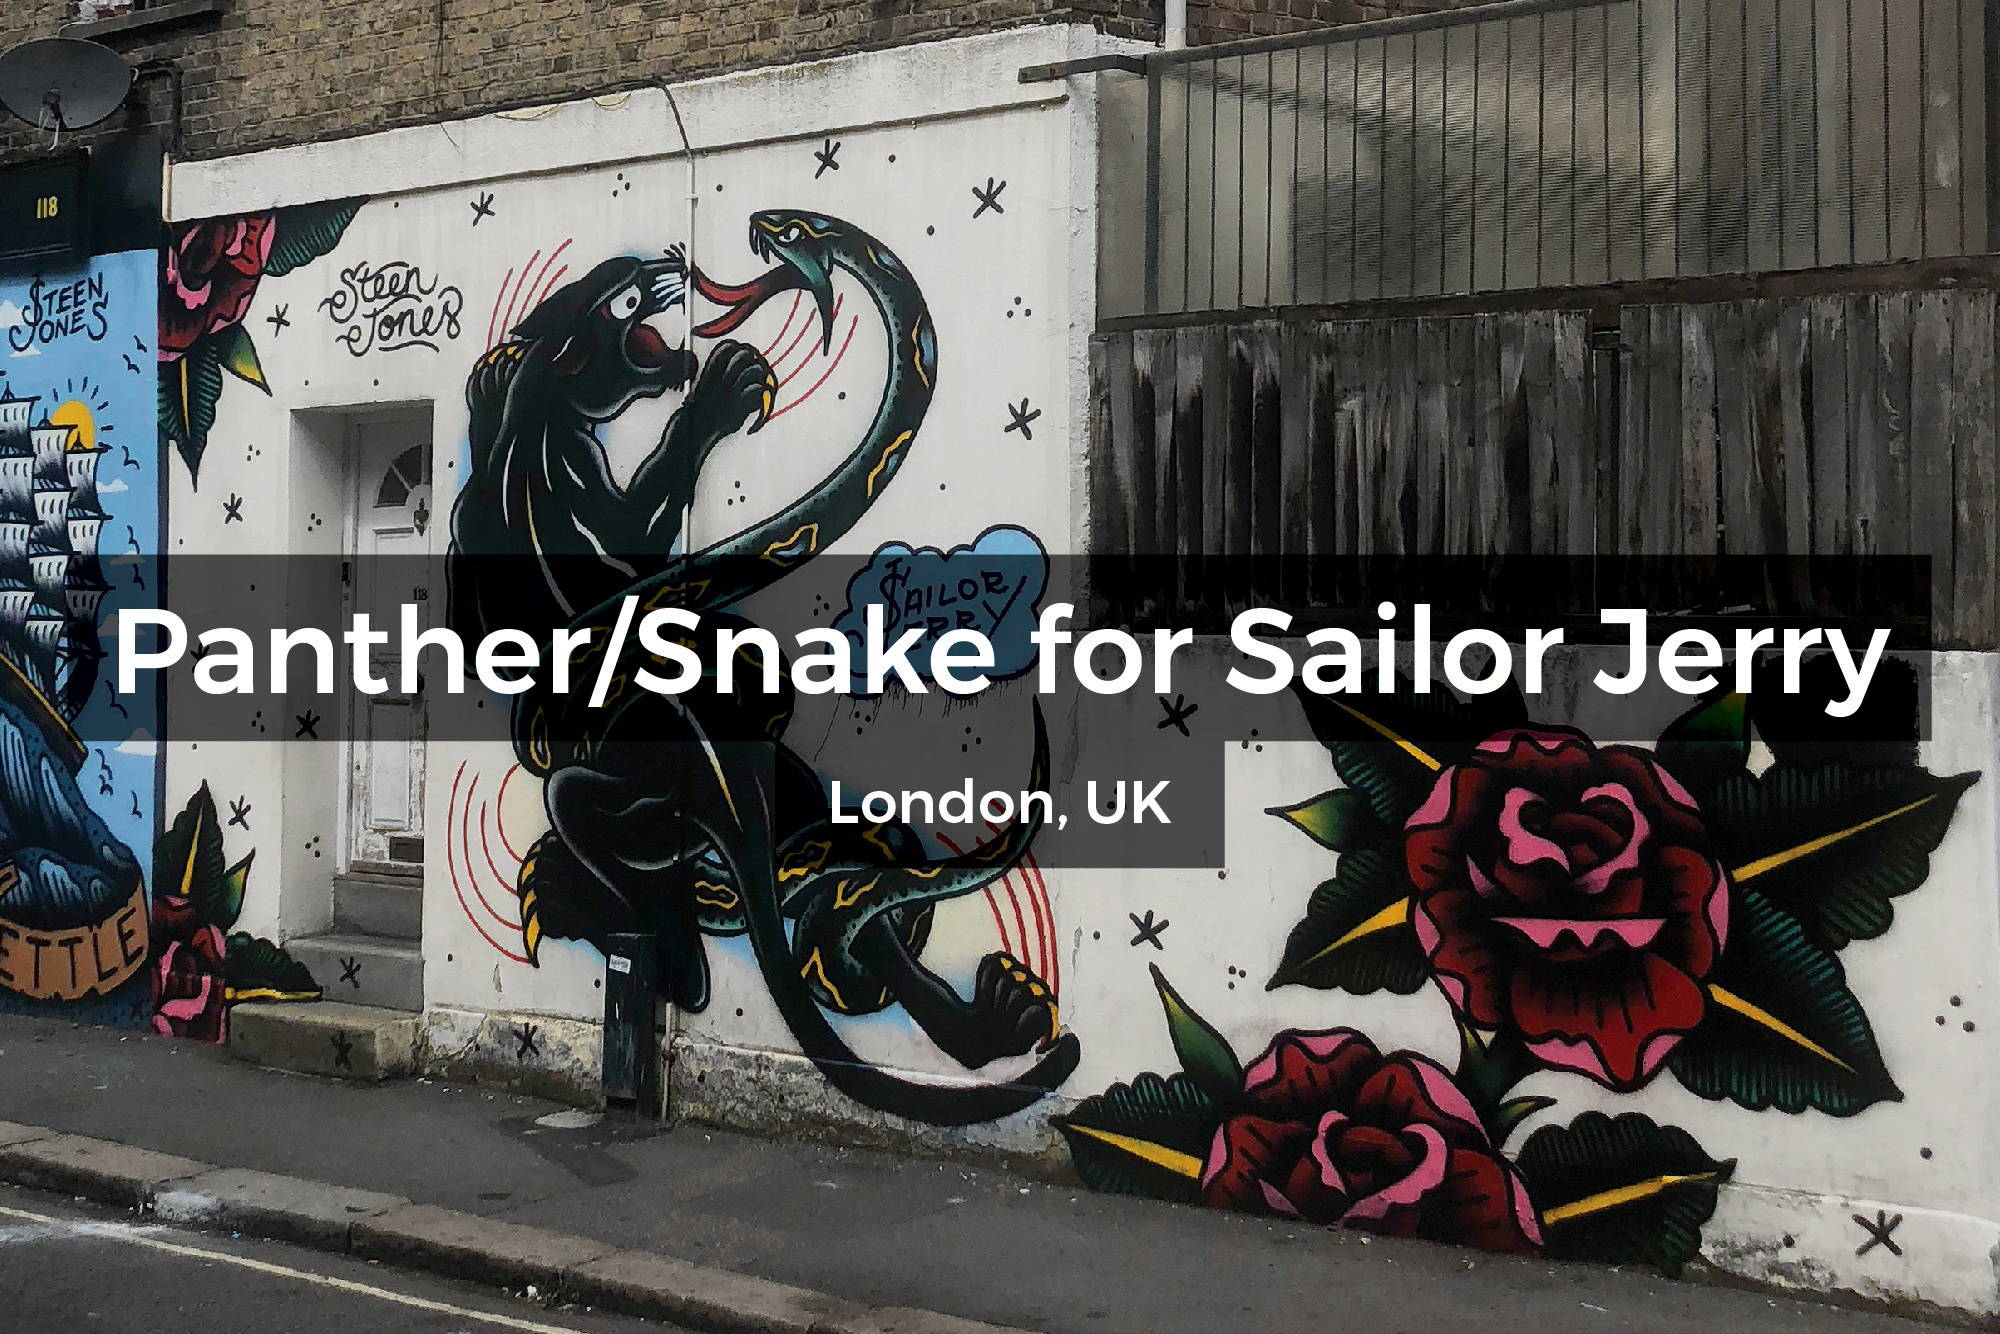 Panther and Snake mural in London, UK by Steen Jones for Sailor Jerry